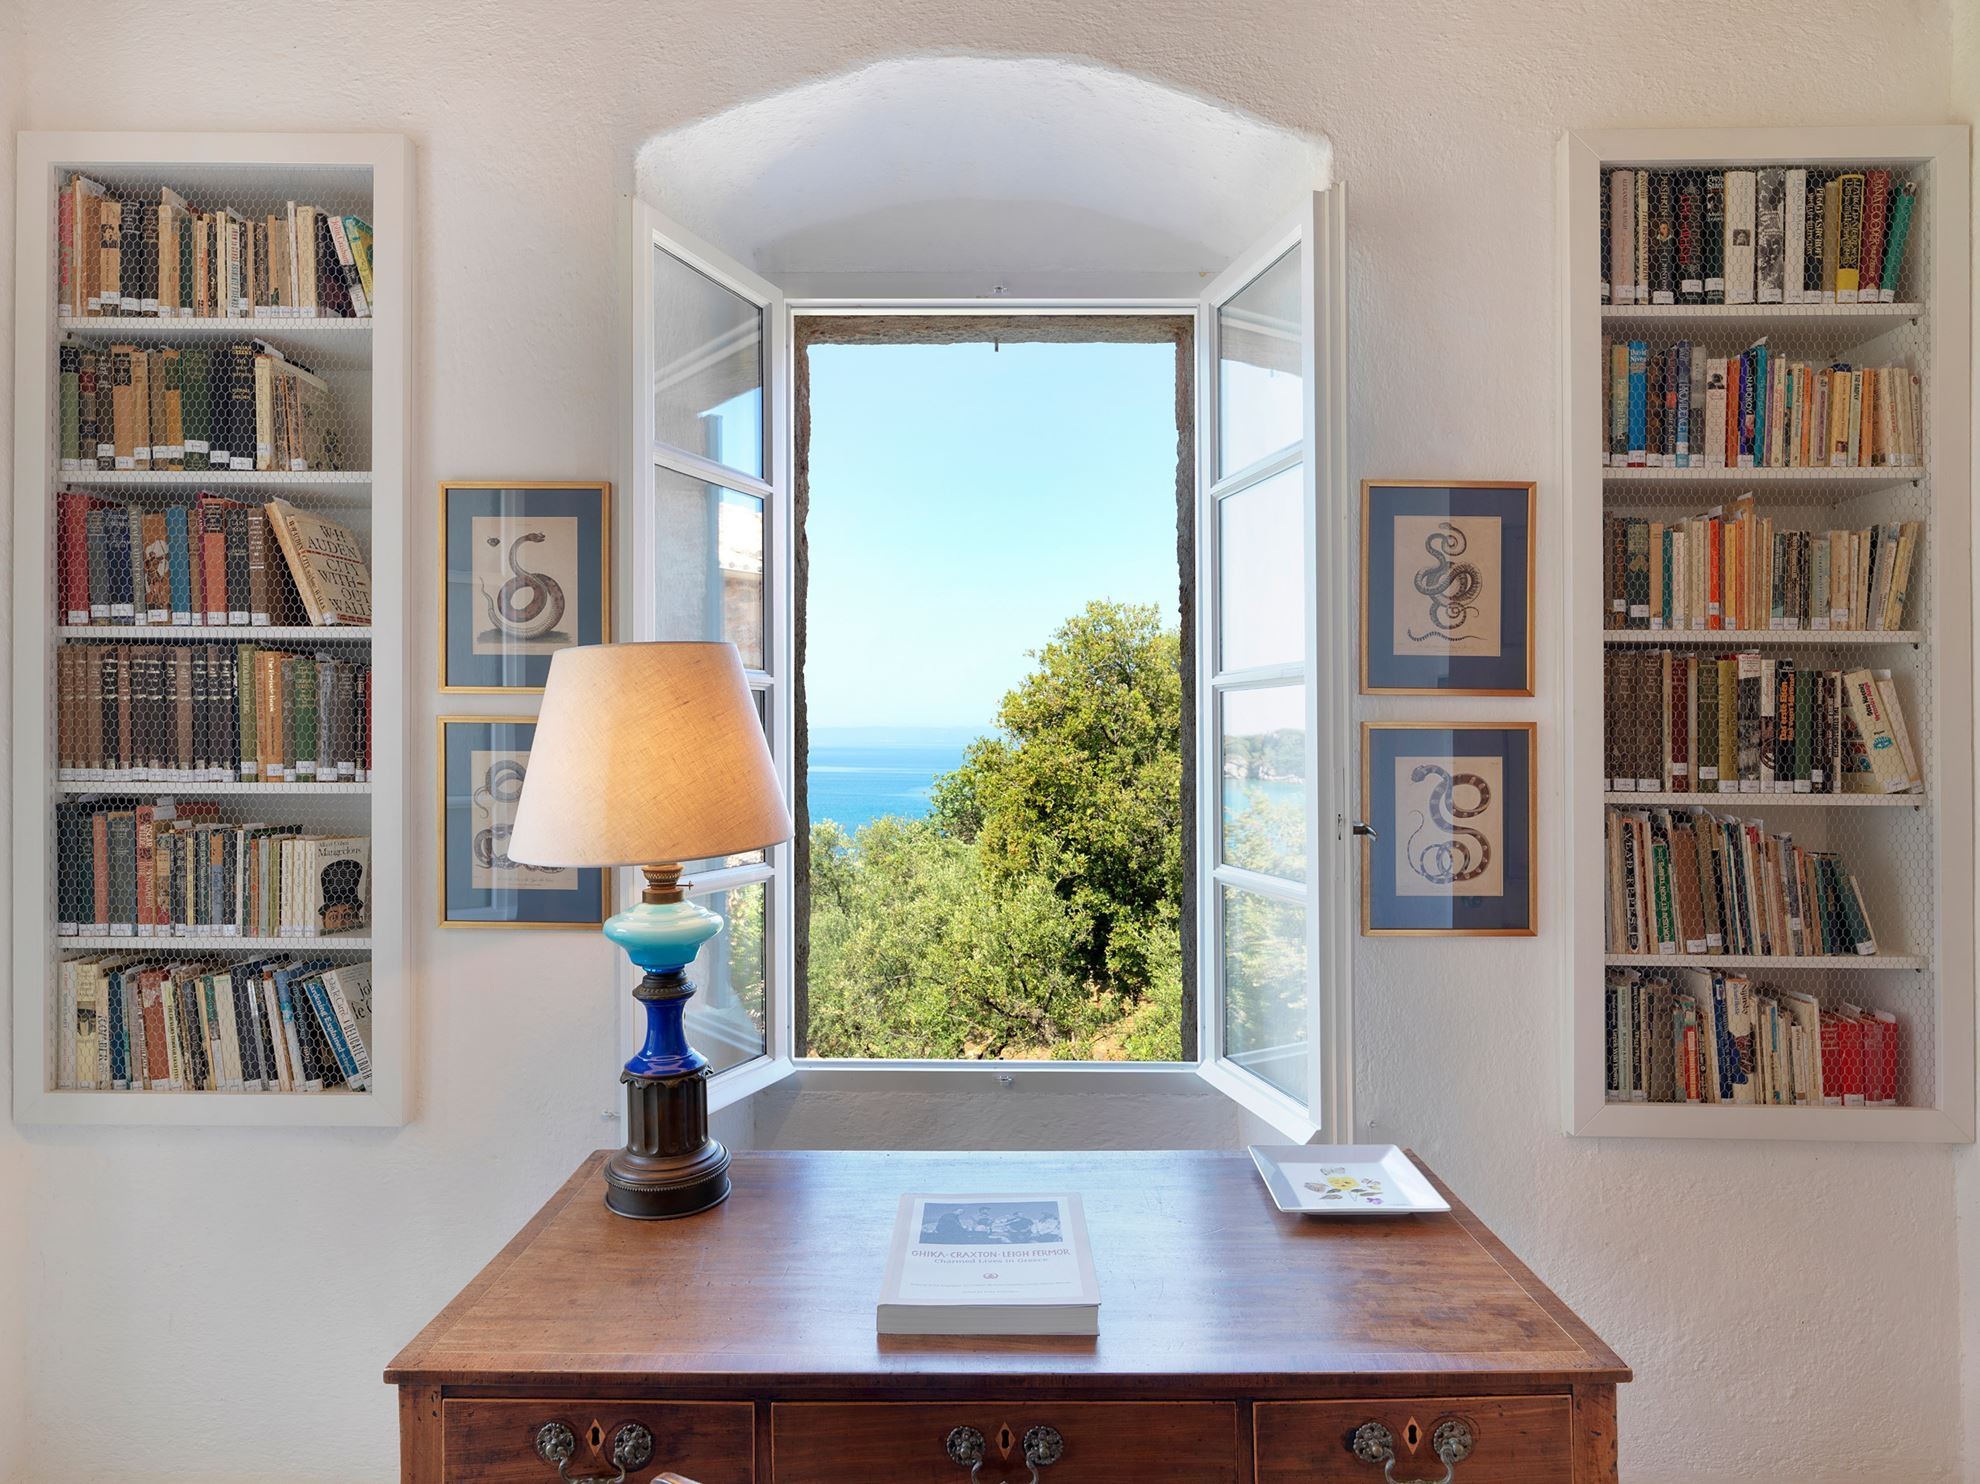 The Patrick & Joan Leigh Fermor House